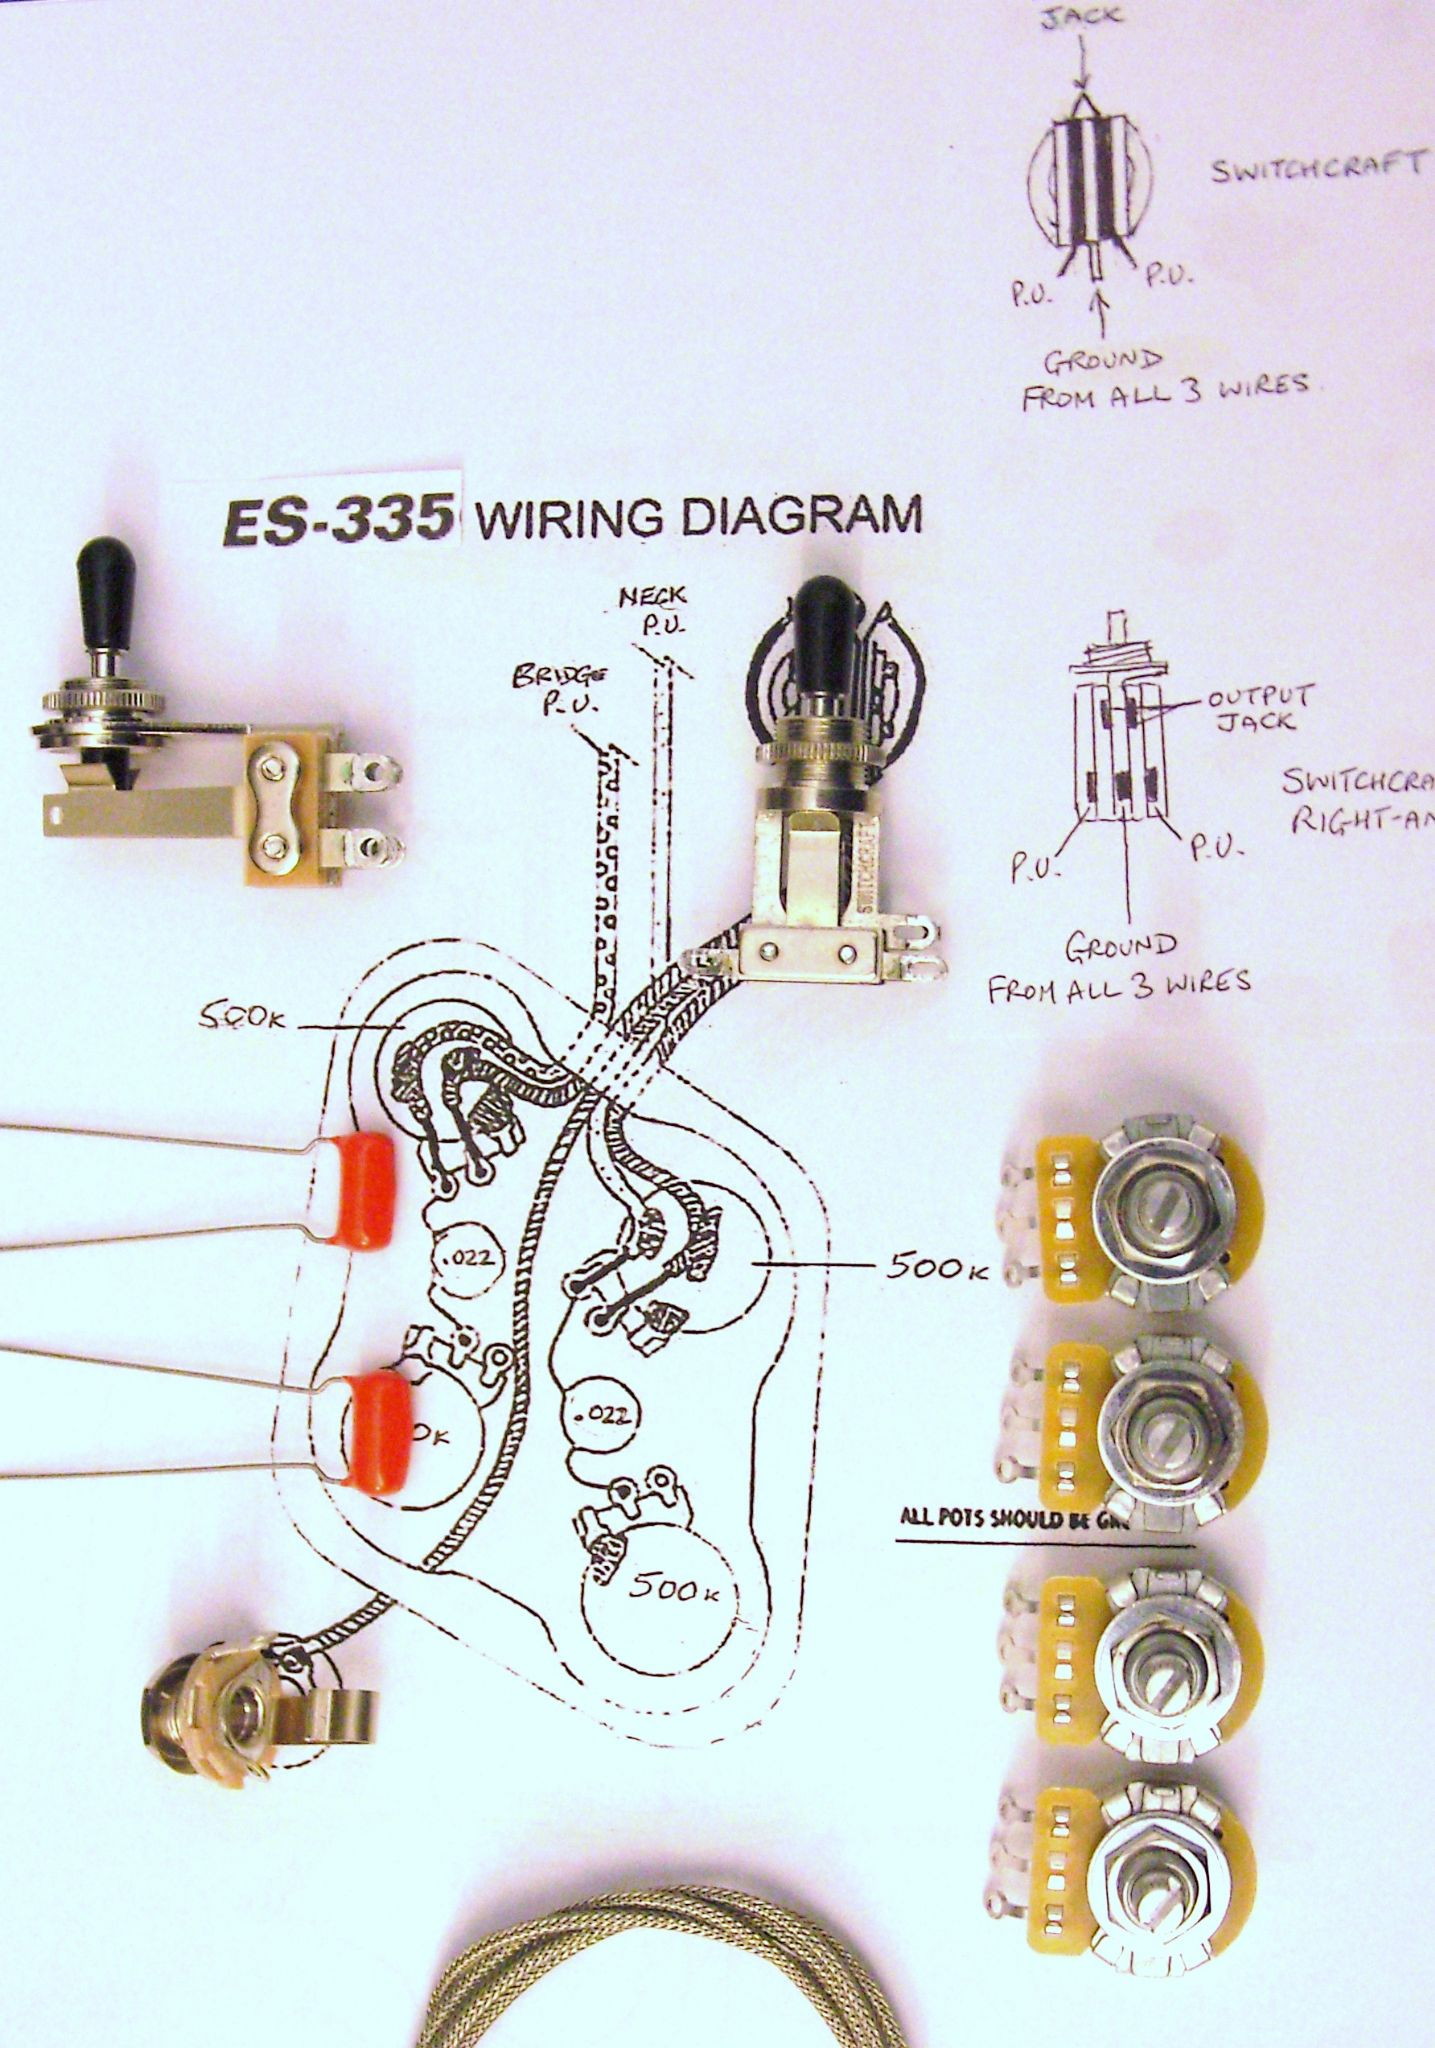 3 Way Toggle Guitar Switch Wiring Diagram Library 4 Wire Kit For 335 With Right Angle Switchcraft Diagrams 2 Humbucker